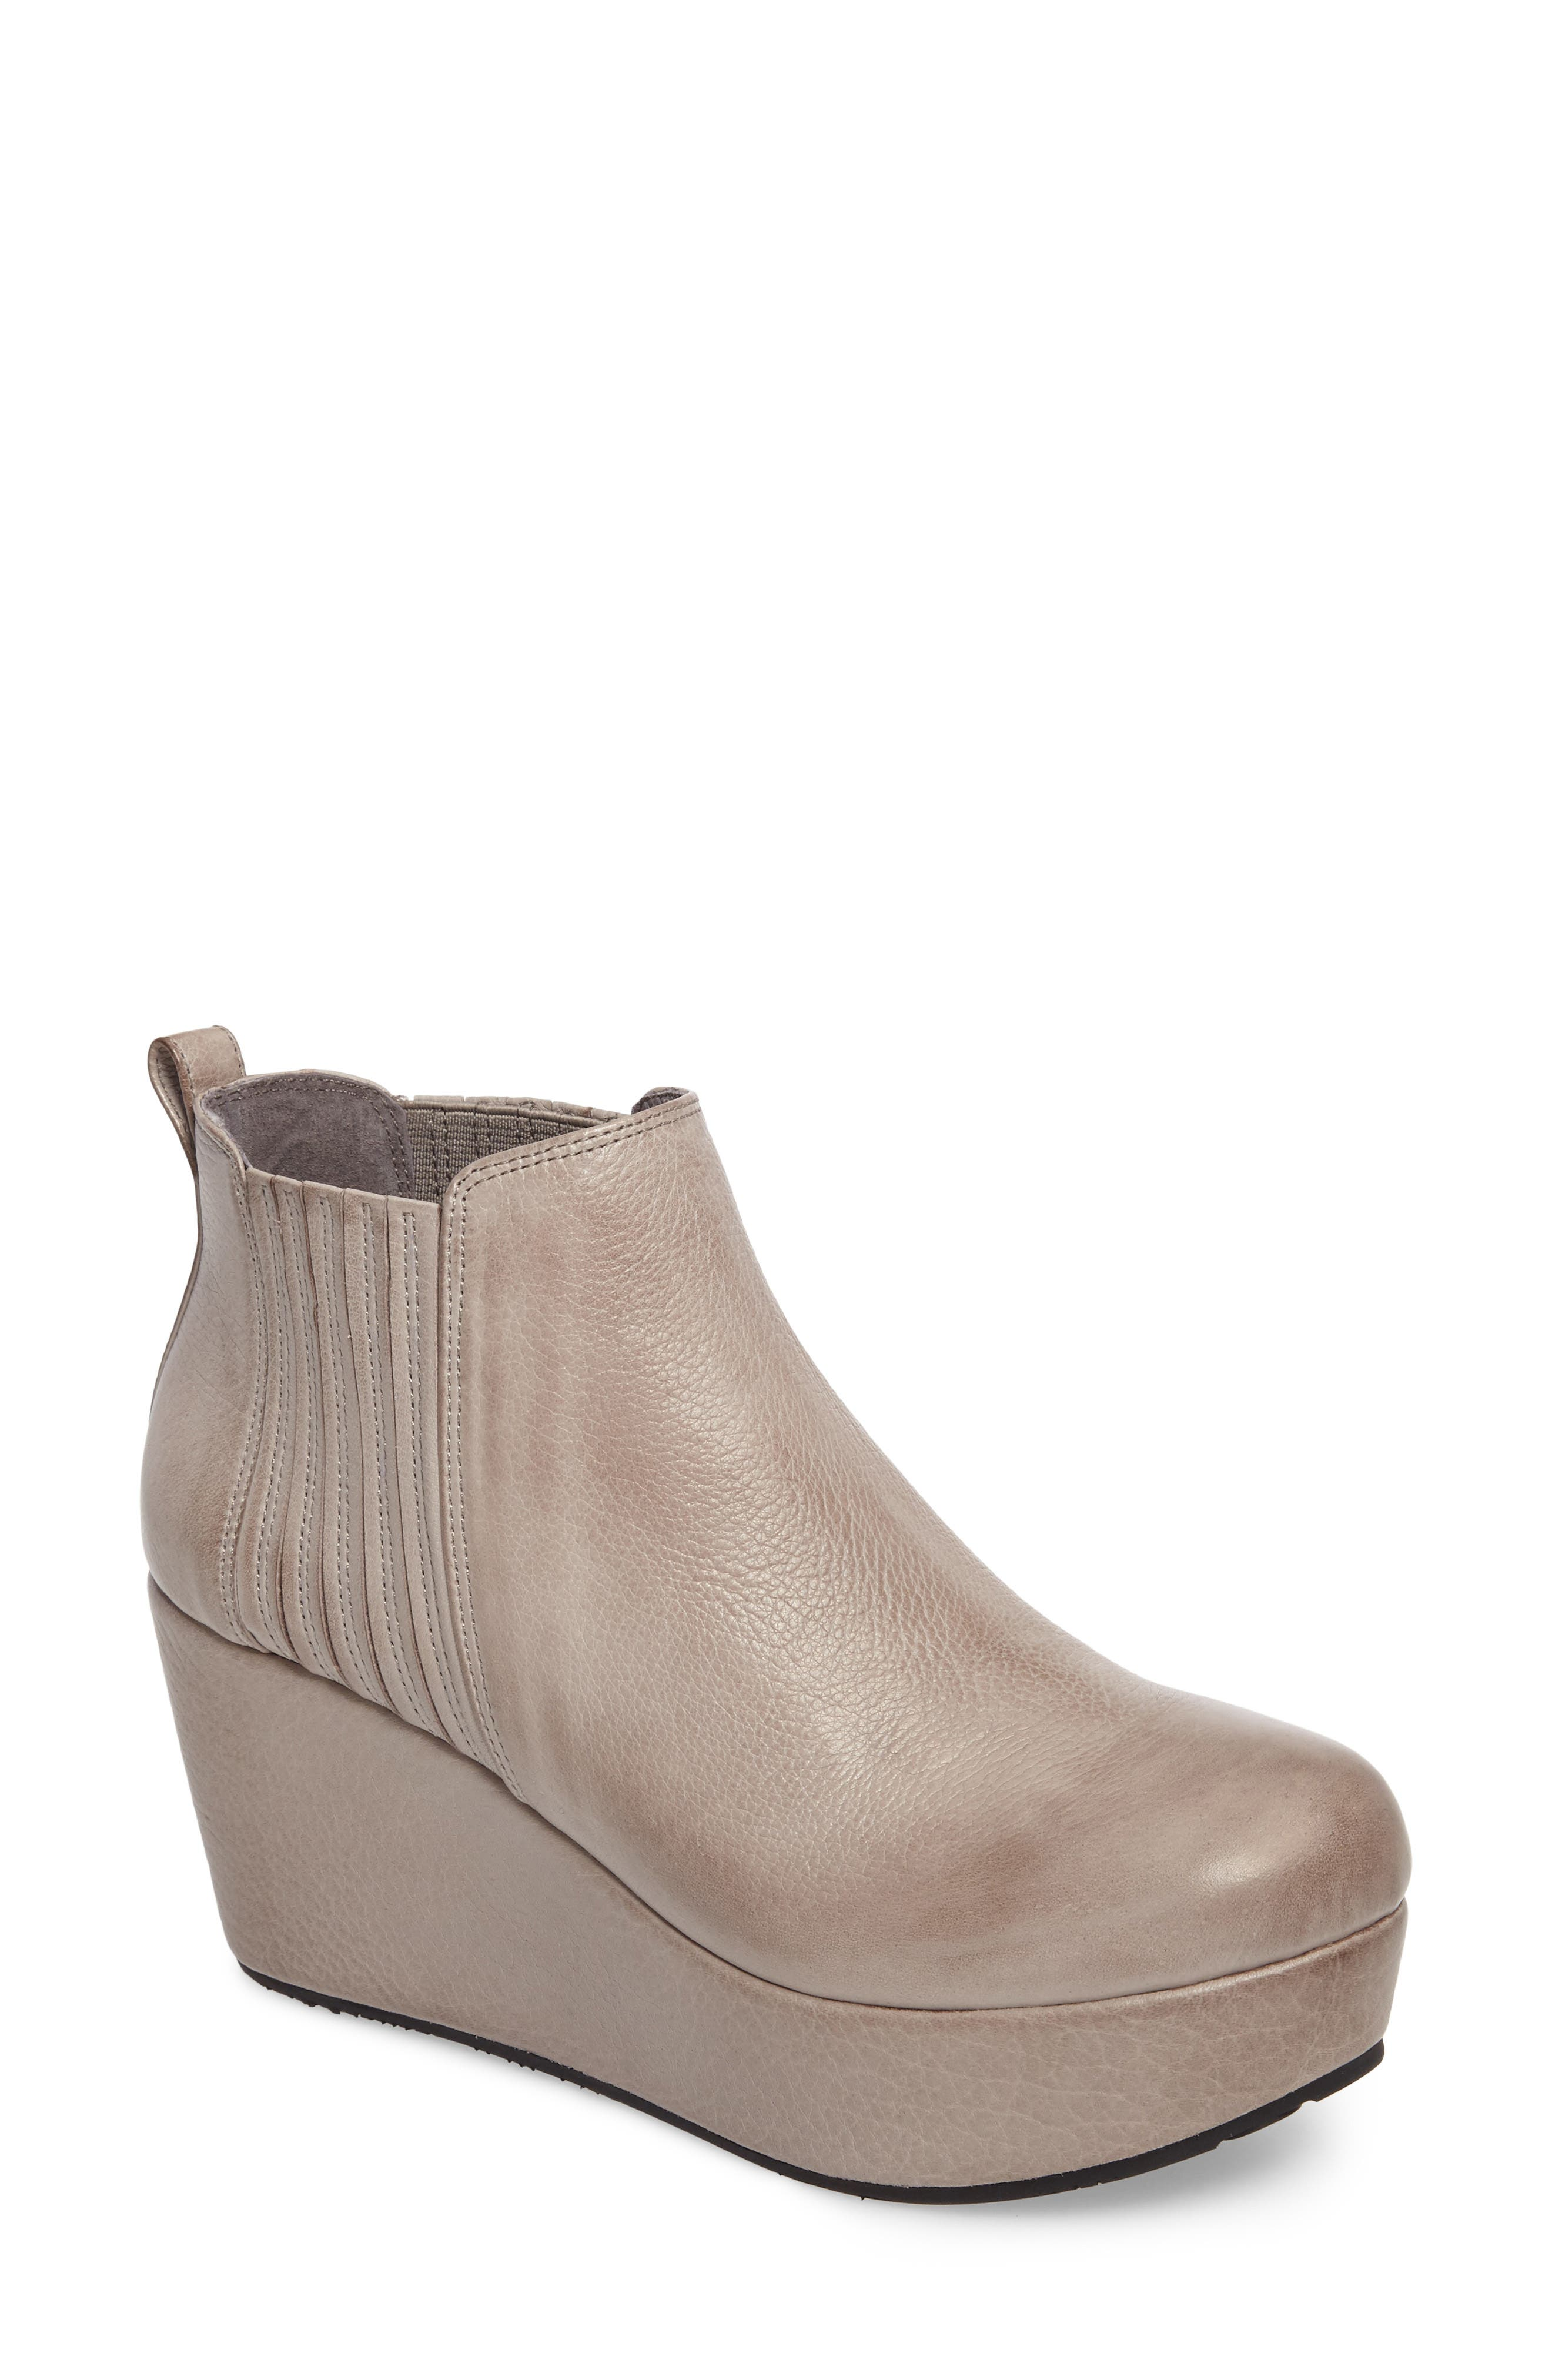 Walden Wedge Bootie,                         Main,                         color, GREY LEATHER